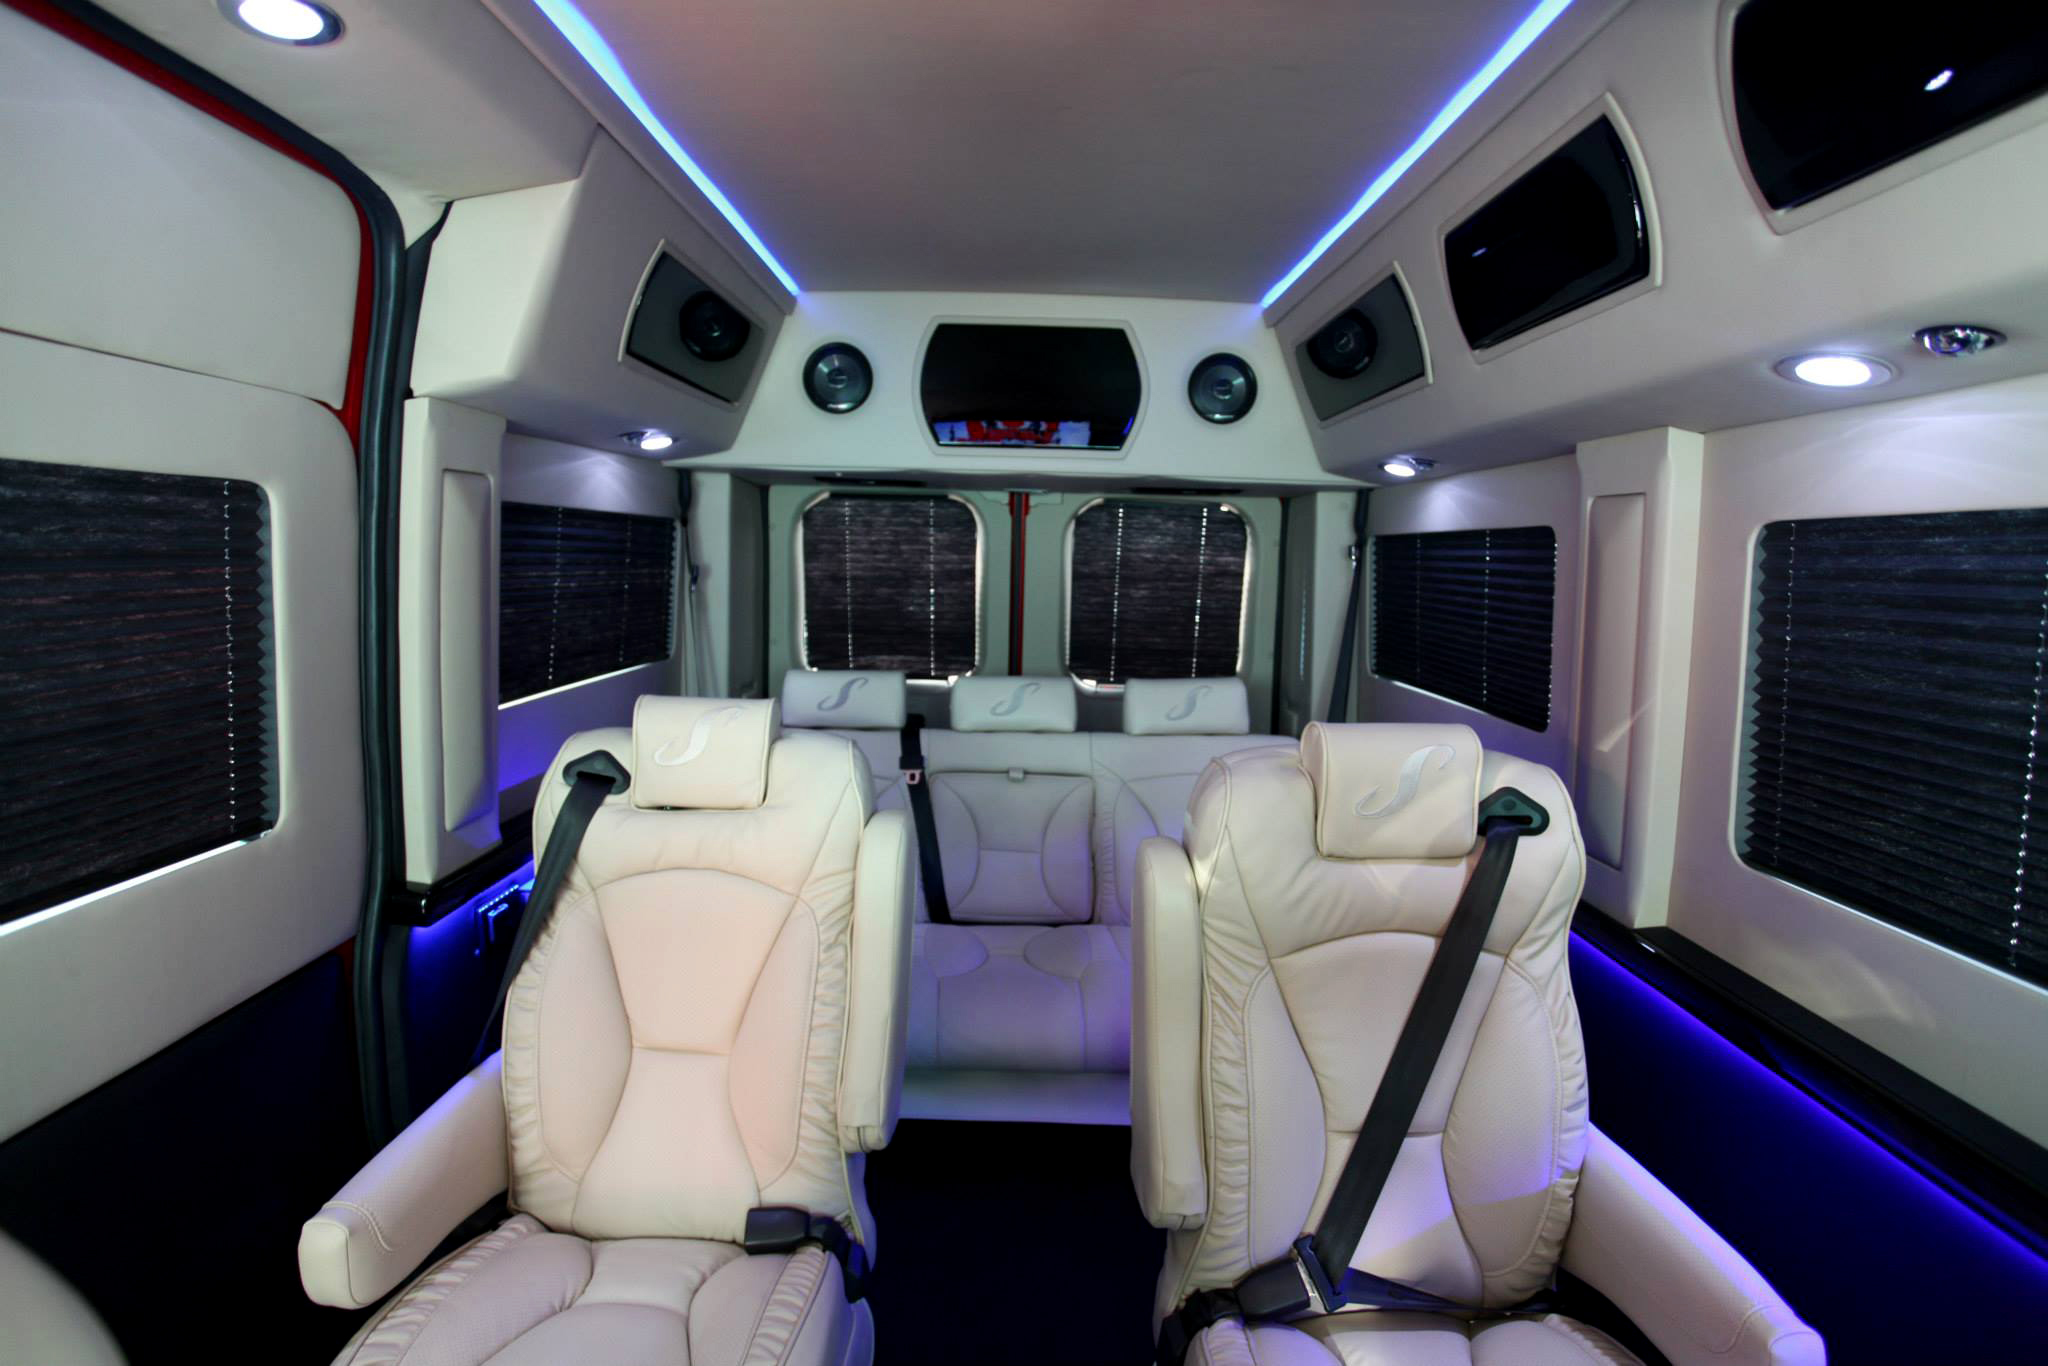 File 2014 sherry vans red high top conversion van on promaster chassis interior for Commercial van interior accessories